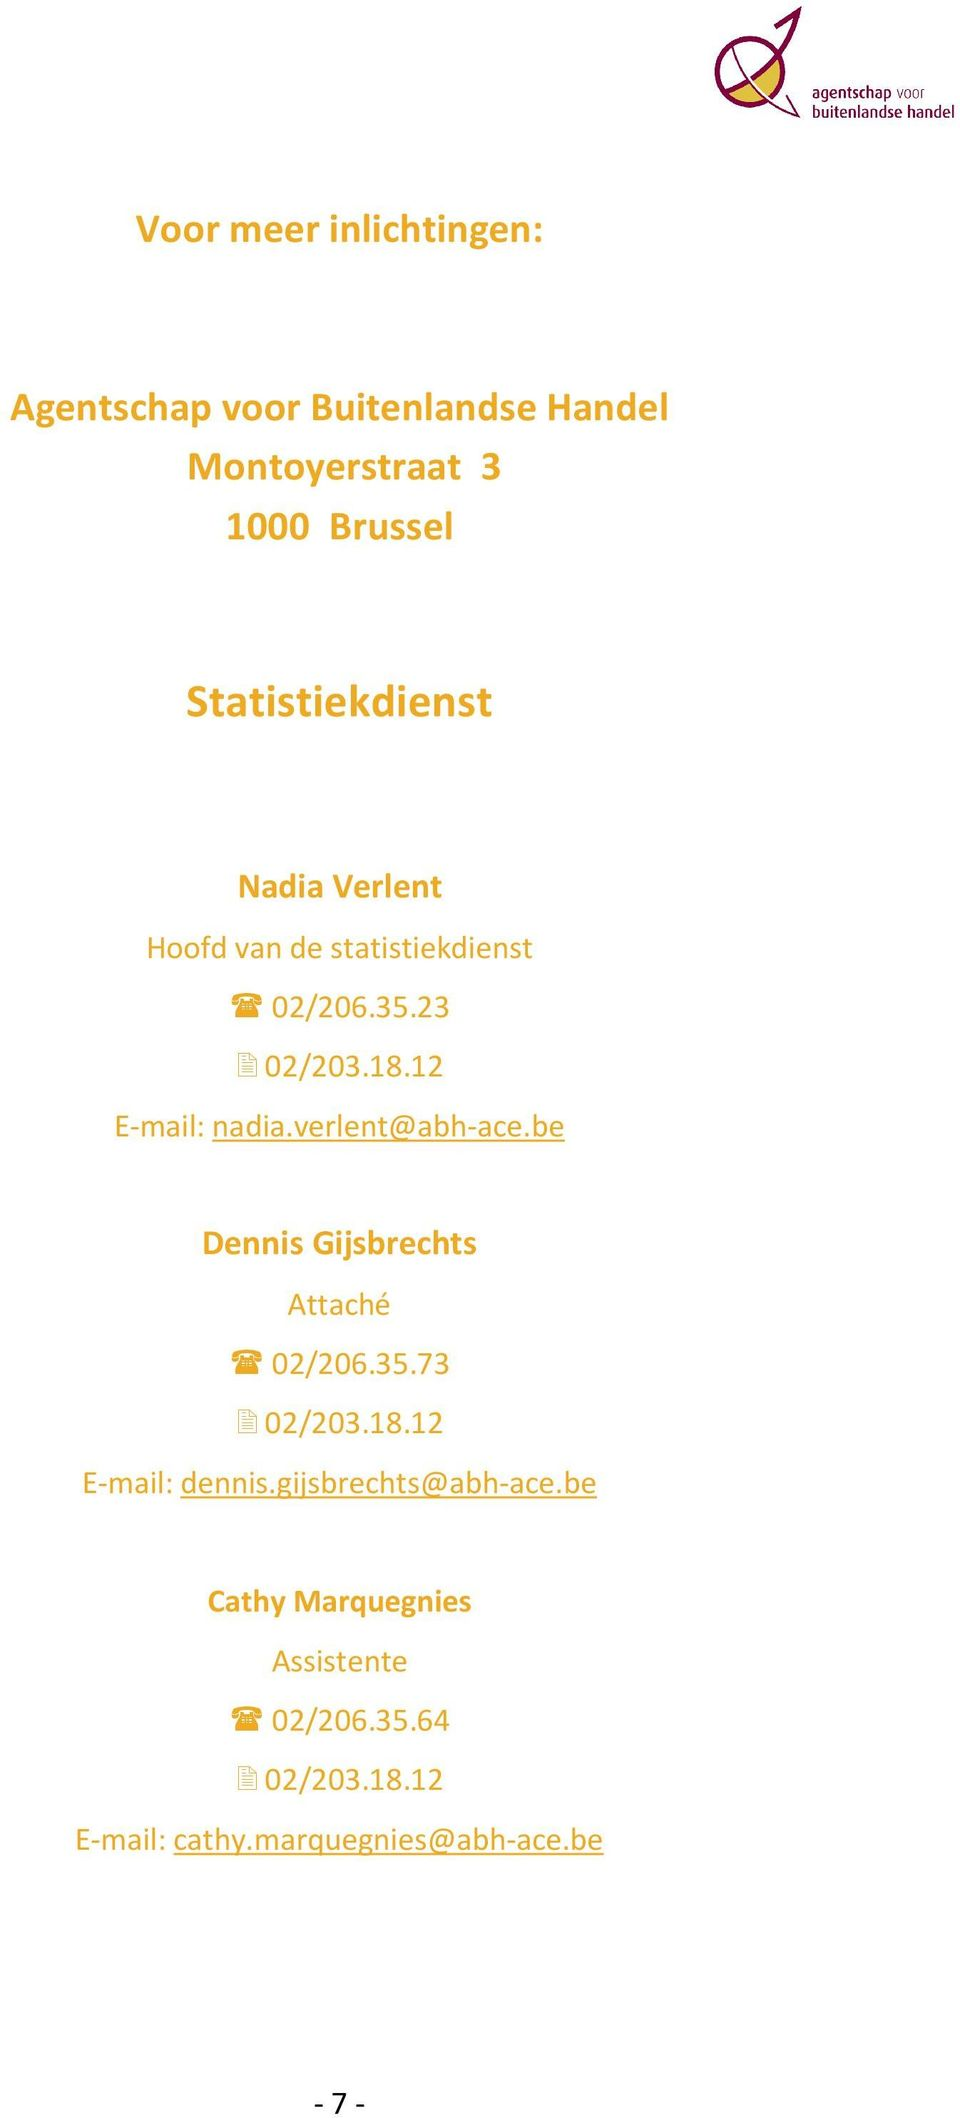 12 E-mail: nadia.verlent@abh-ace.be Dennis Gijsbrechts Attaché 02/206.35.73 02/203.18.